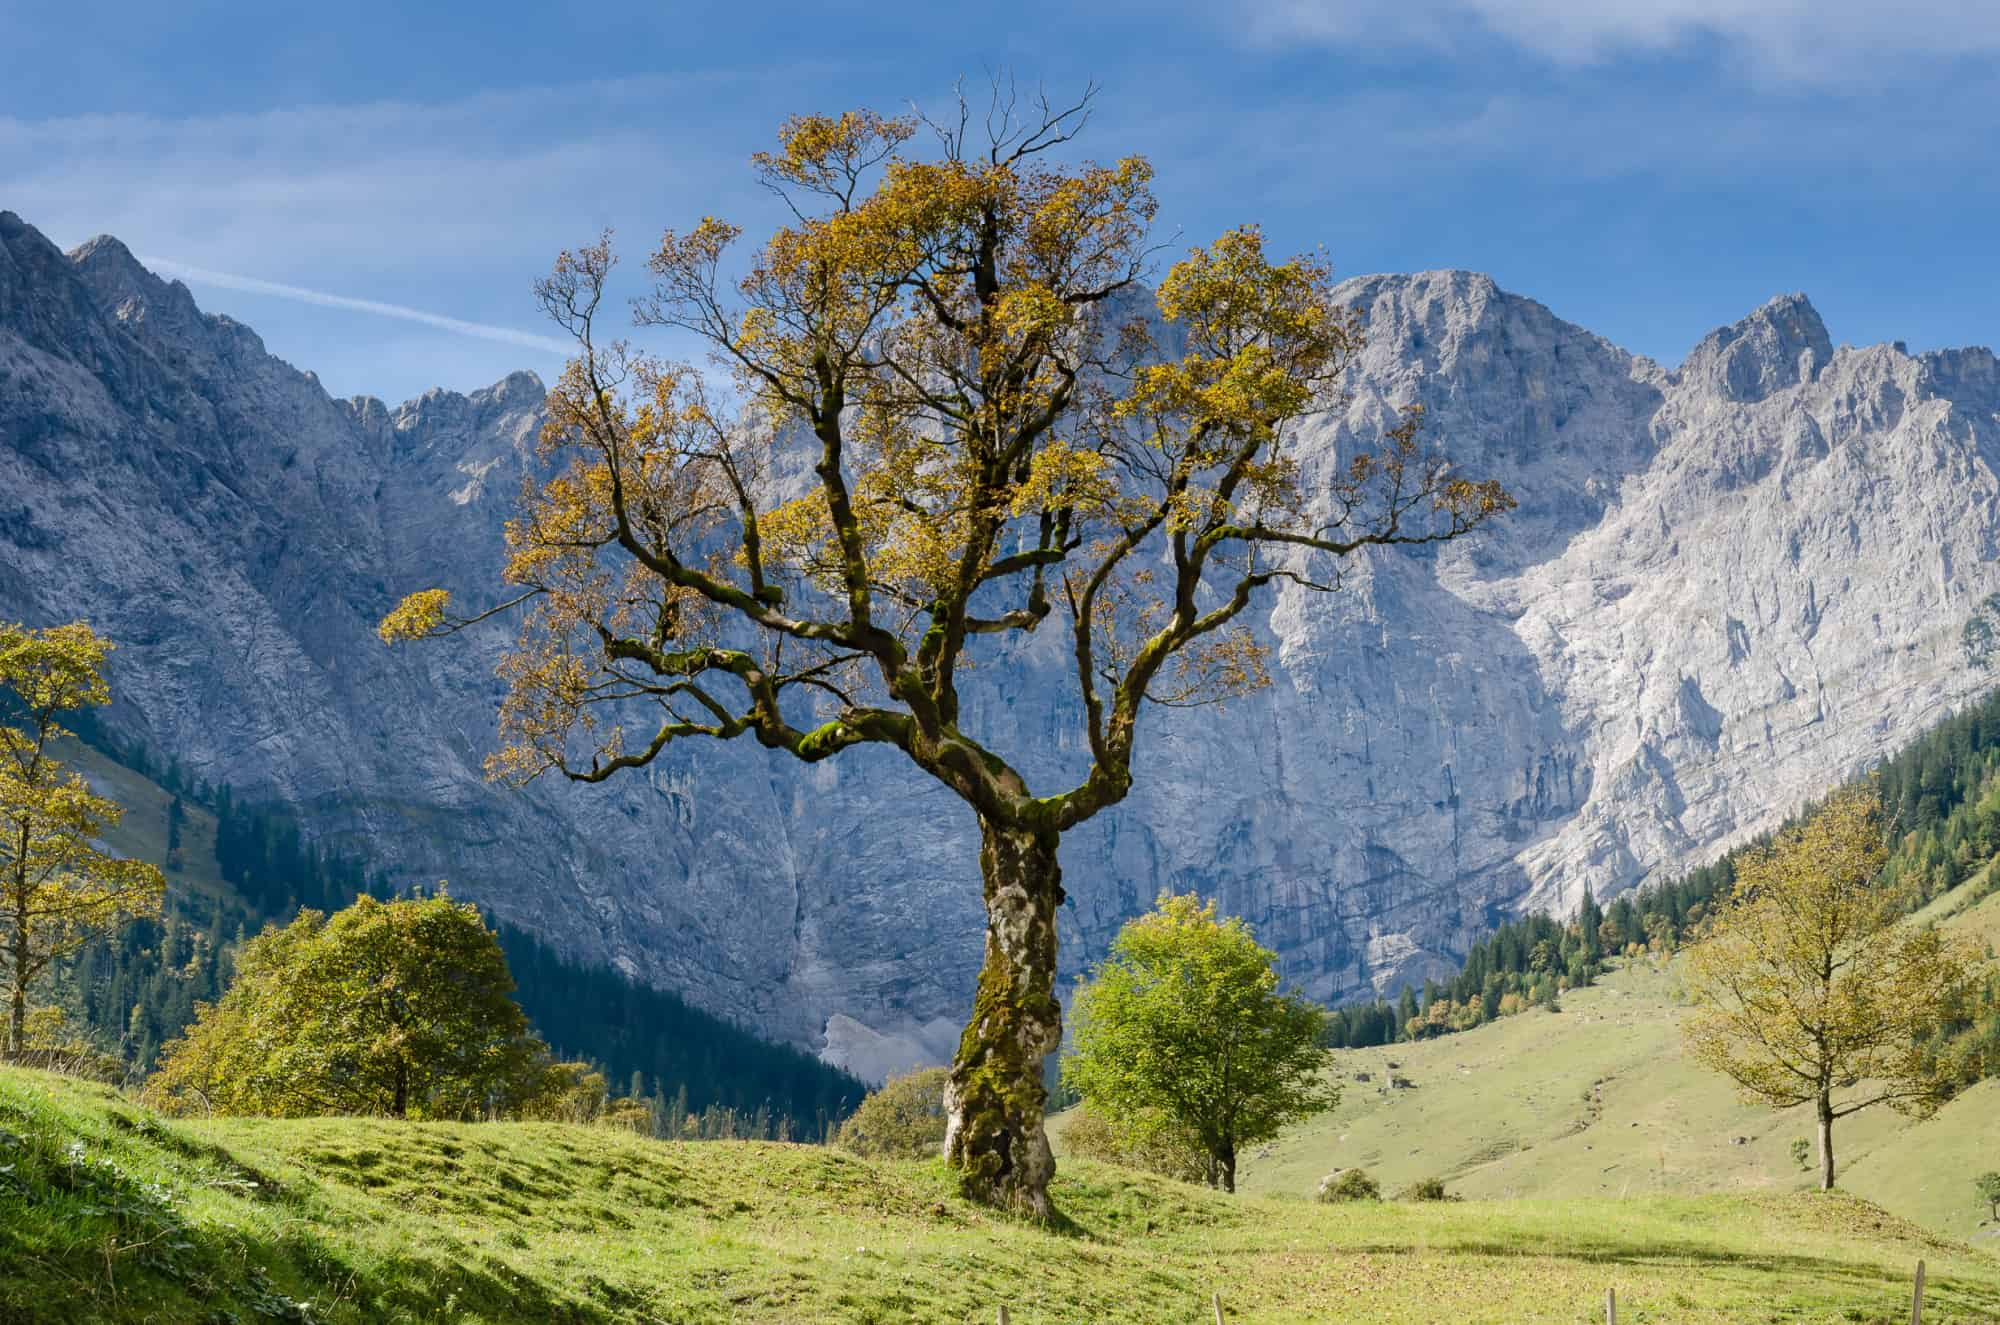 Tree in an alpine valley that looks like it's struggling to survive.